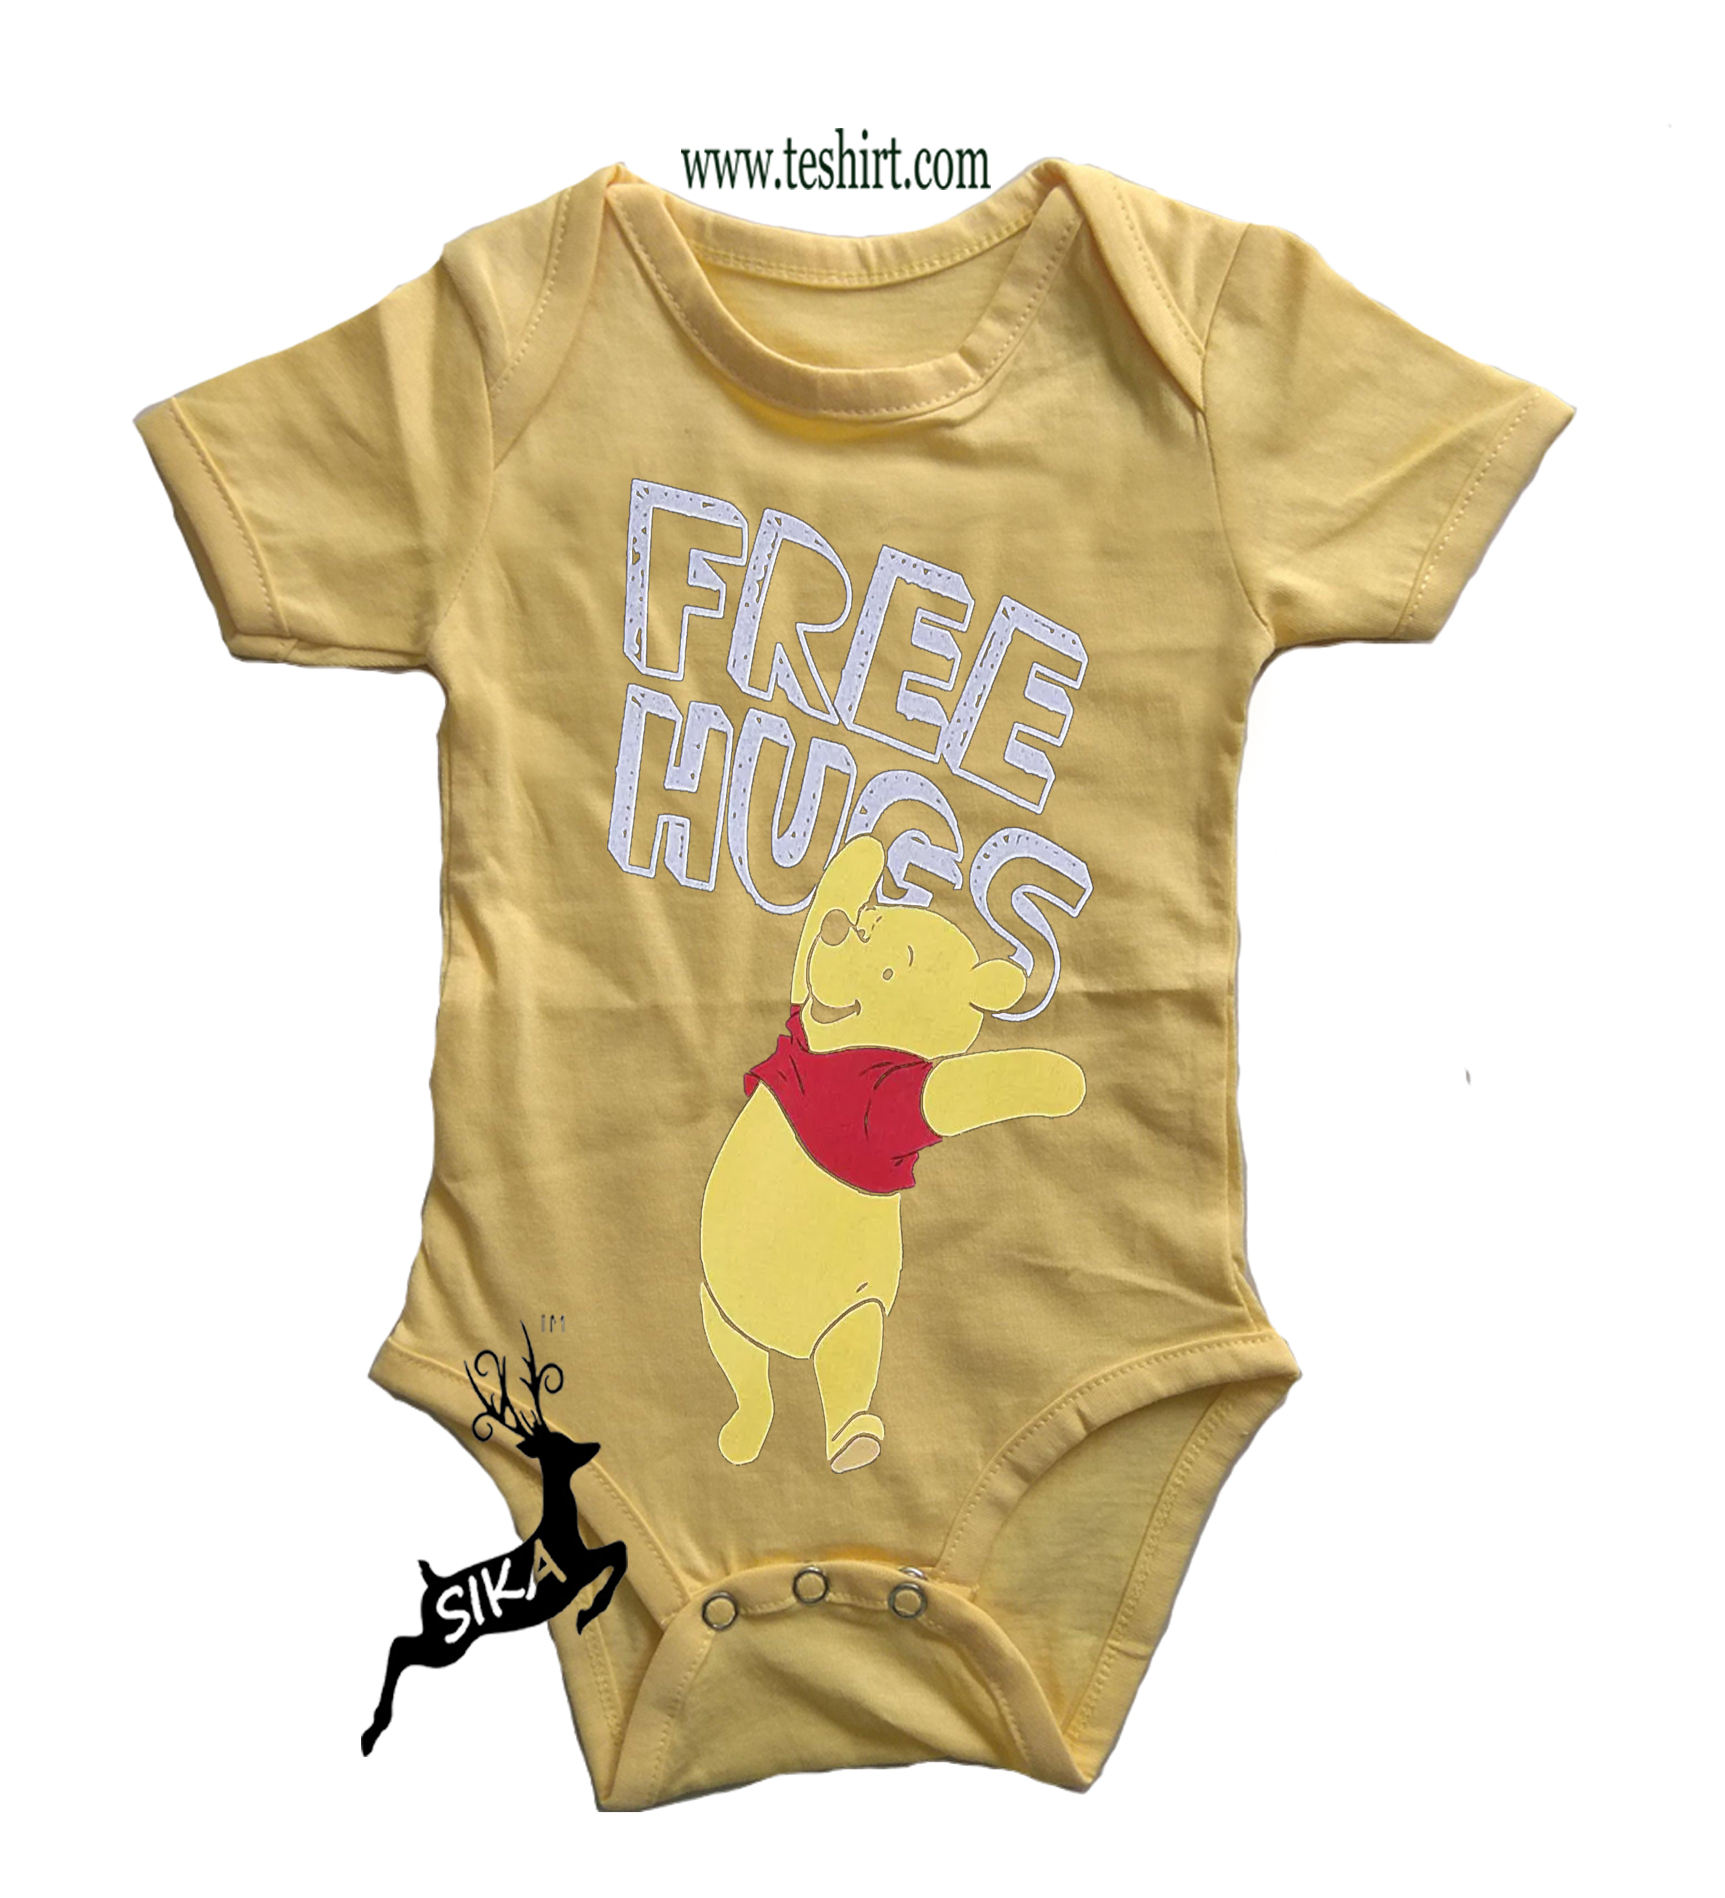 fashion romper baby cheap cotton jersey toddler plain colors onesie New Product 2019 Baby Boy's Clothes Romper $1 dollar romper